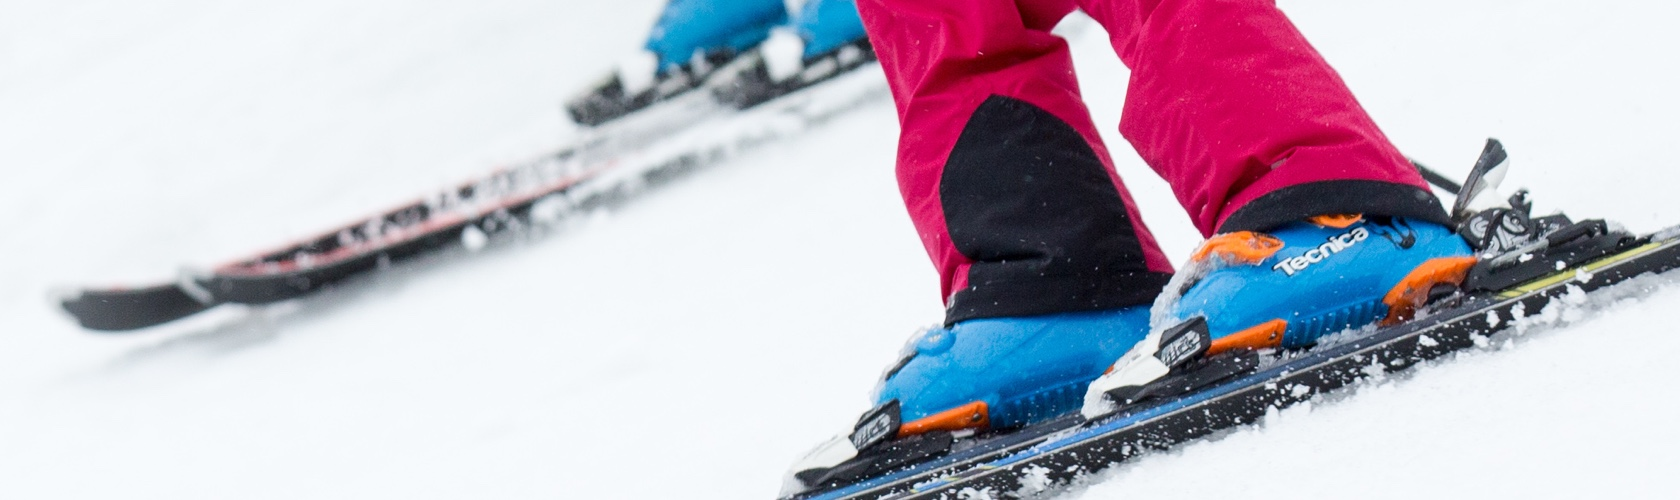 a2fddbb283 How to size kids skis